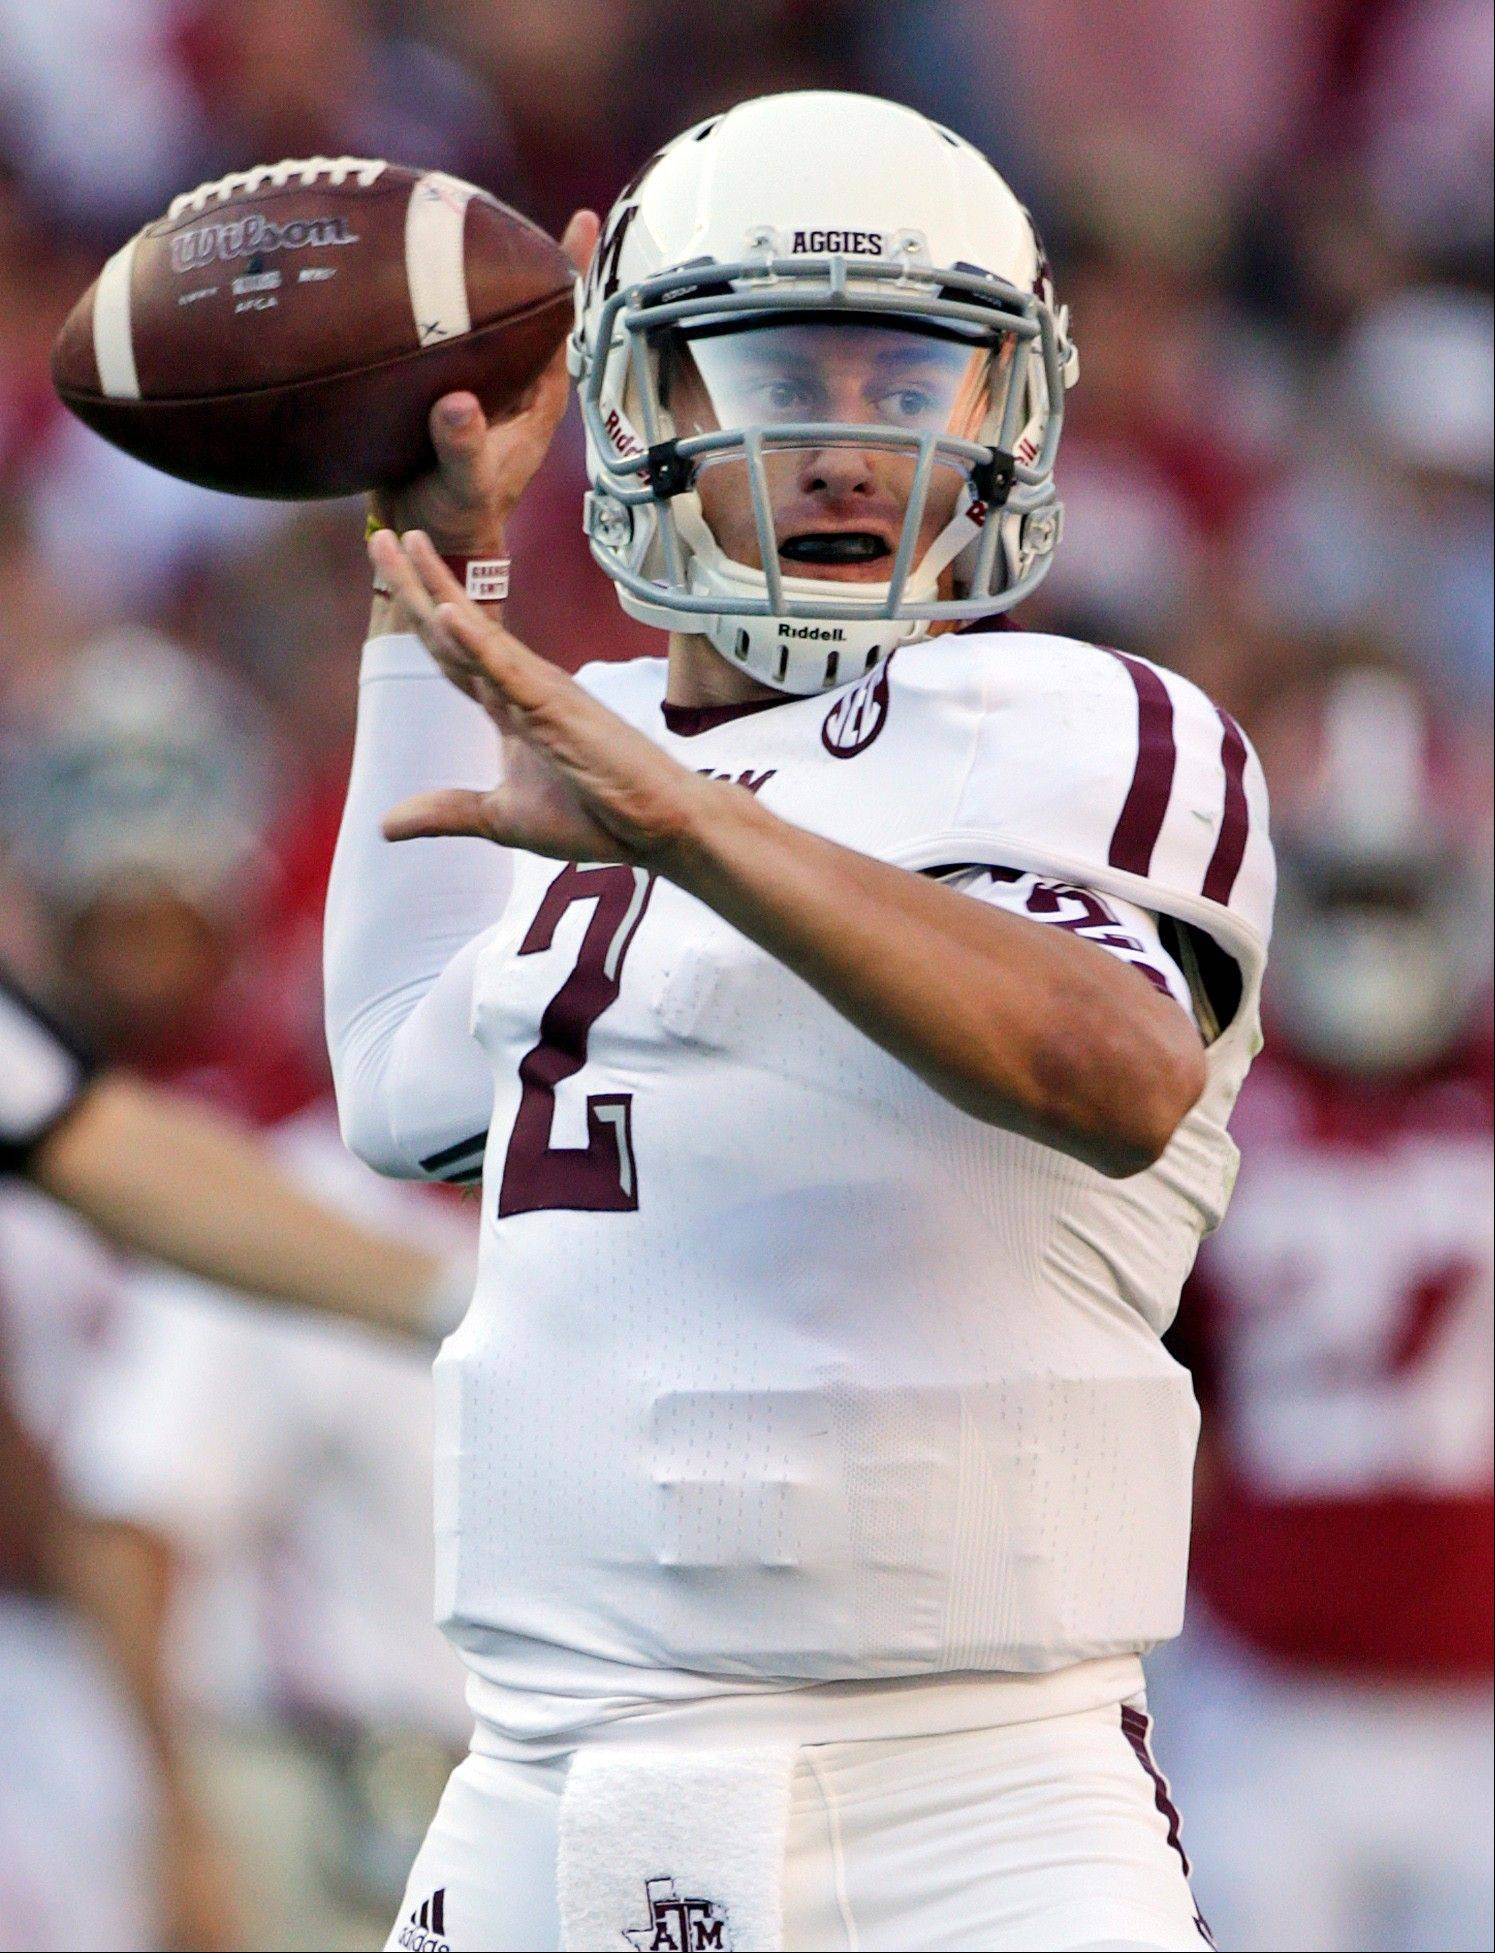 Texas A&M quarterback Johnny Manziel looks for a receiver against Alabama. Manziel was selected to the first-team on The Associated Press All-America football team.